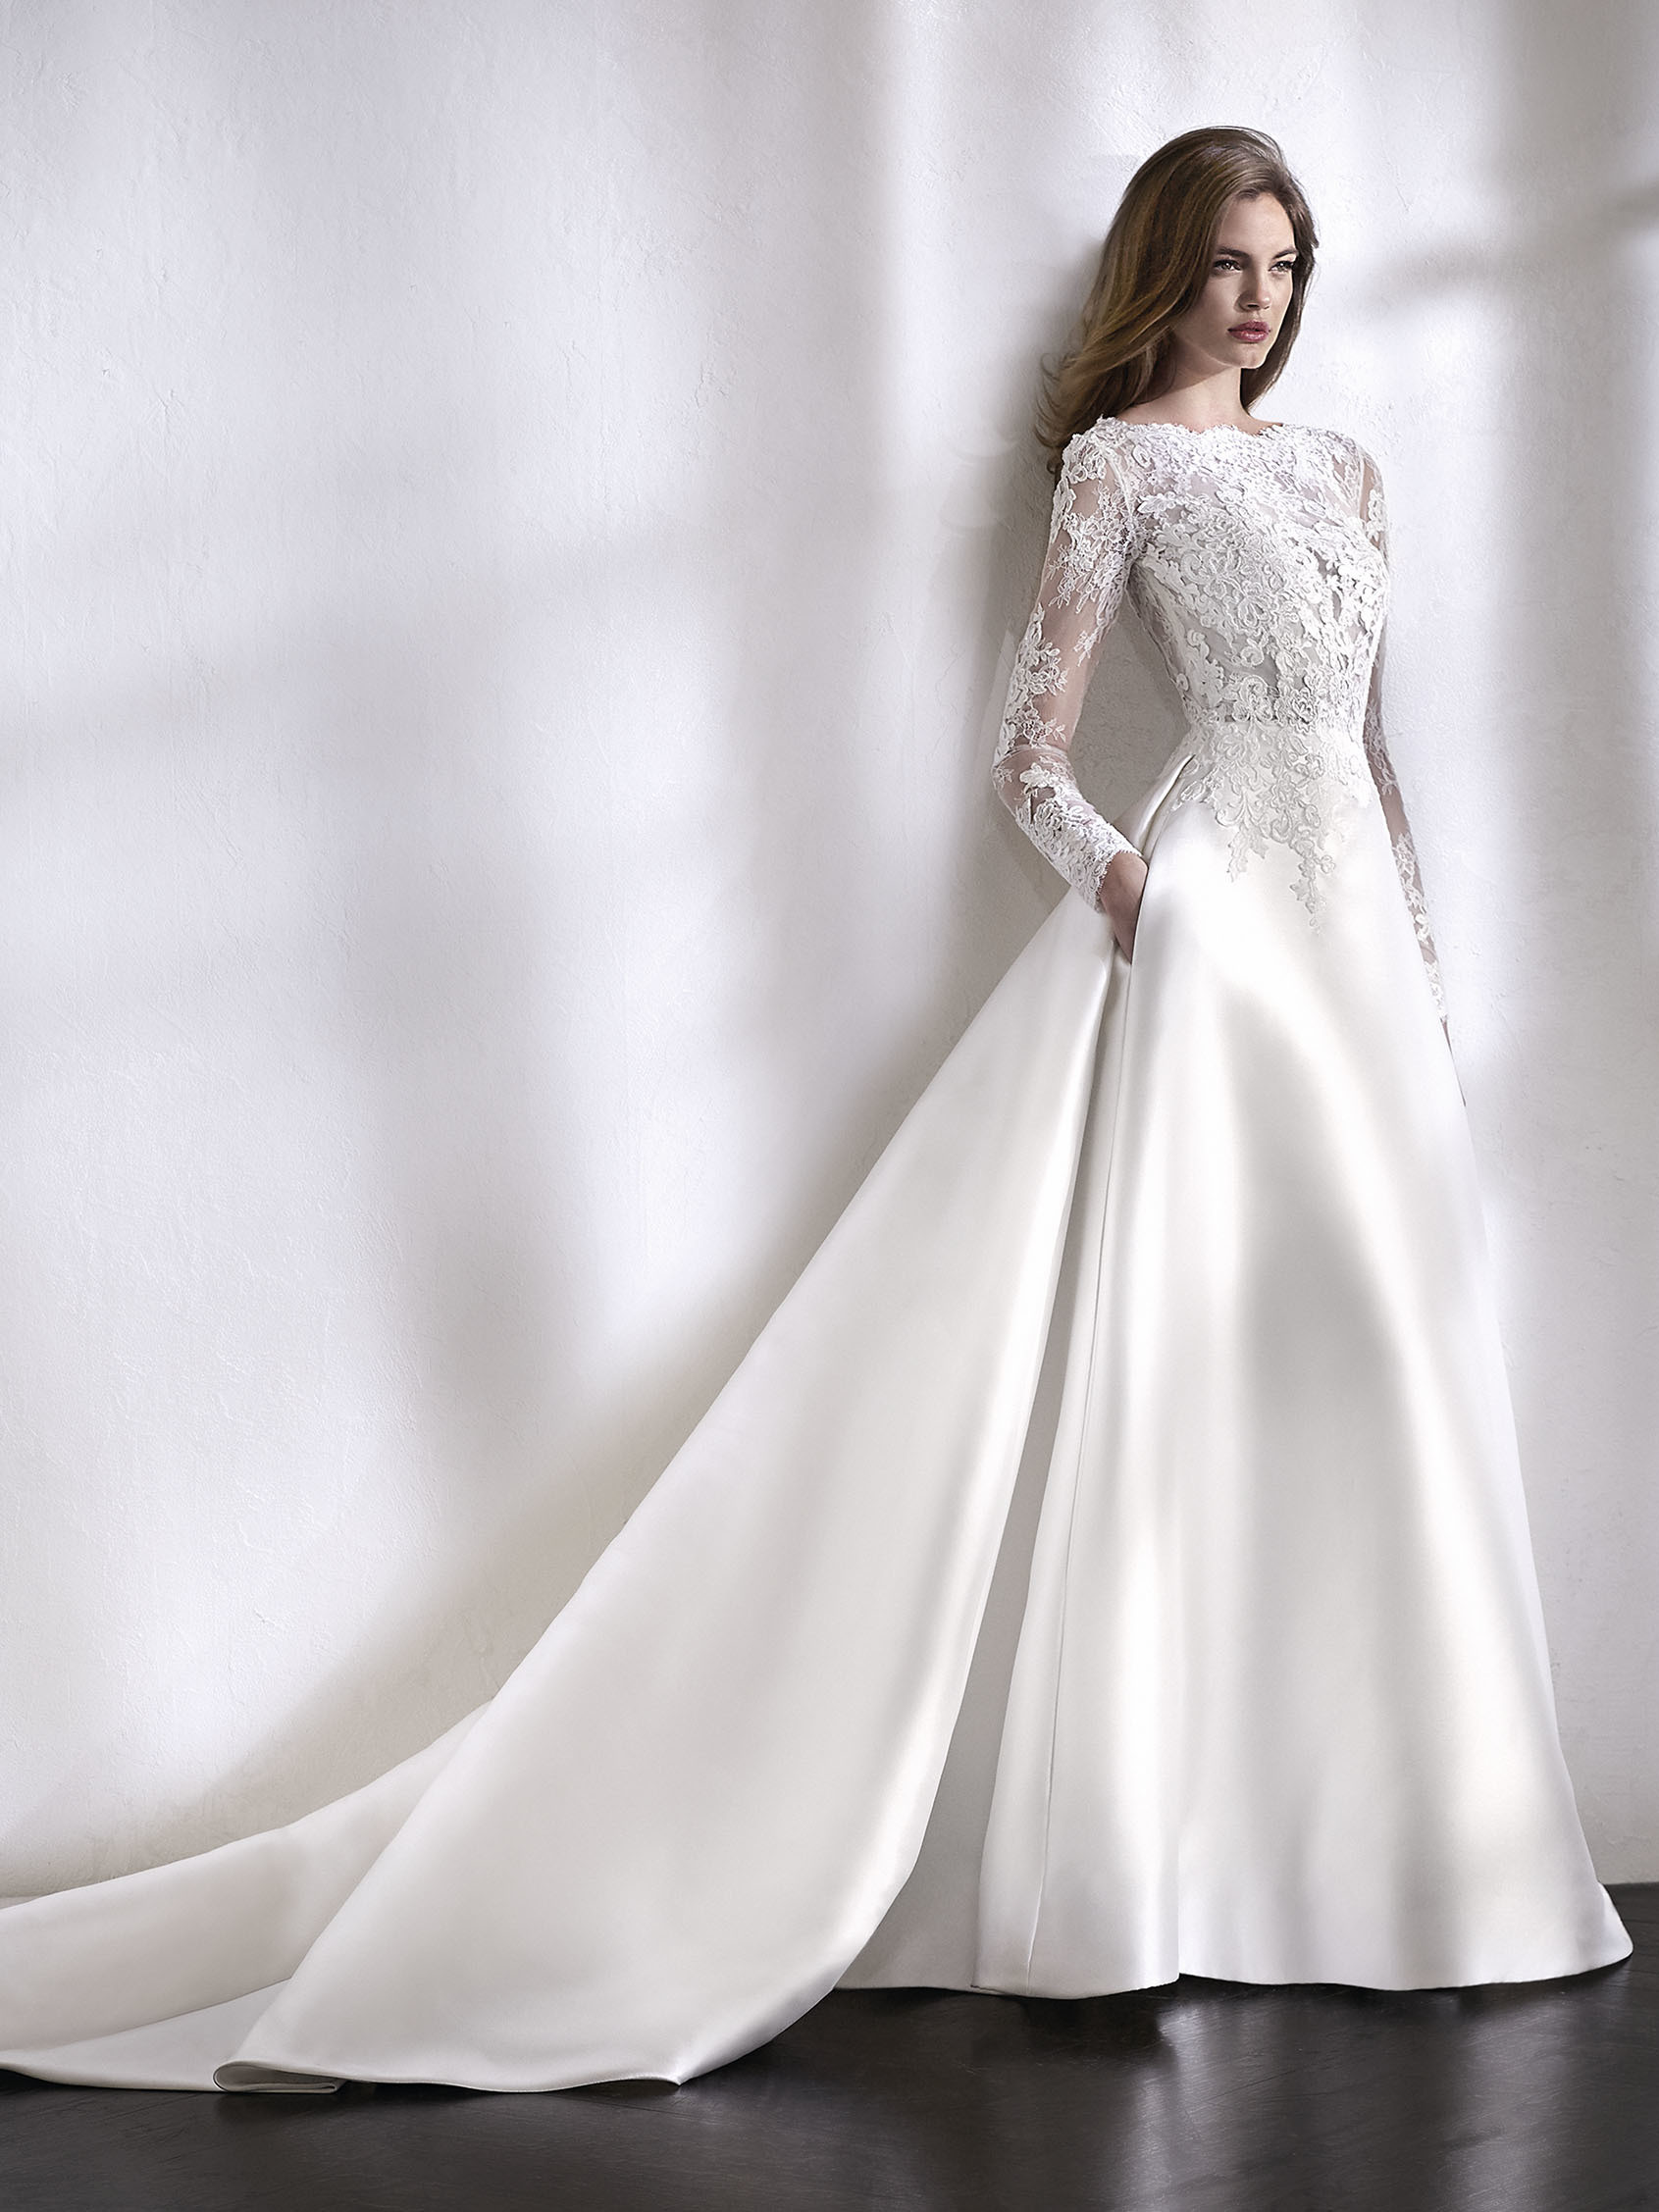 Brides by Elizabeth wedding gown